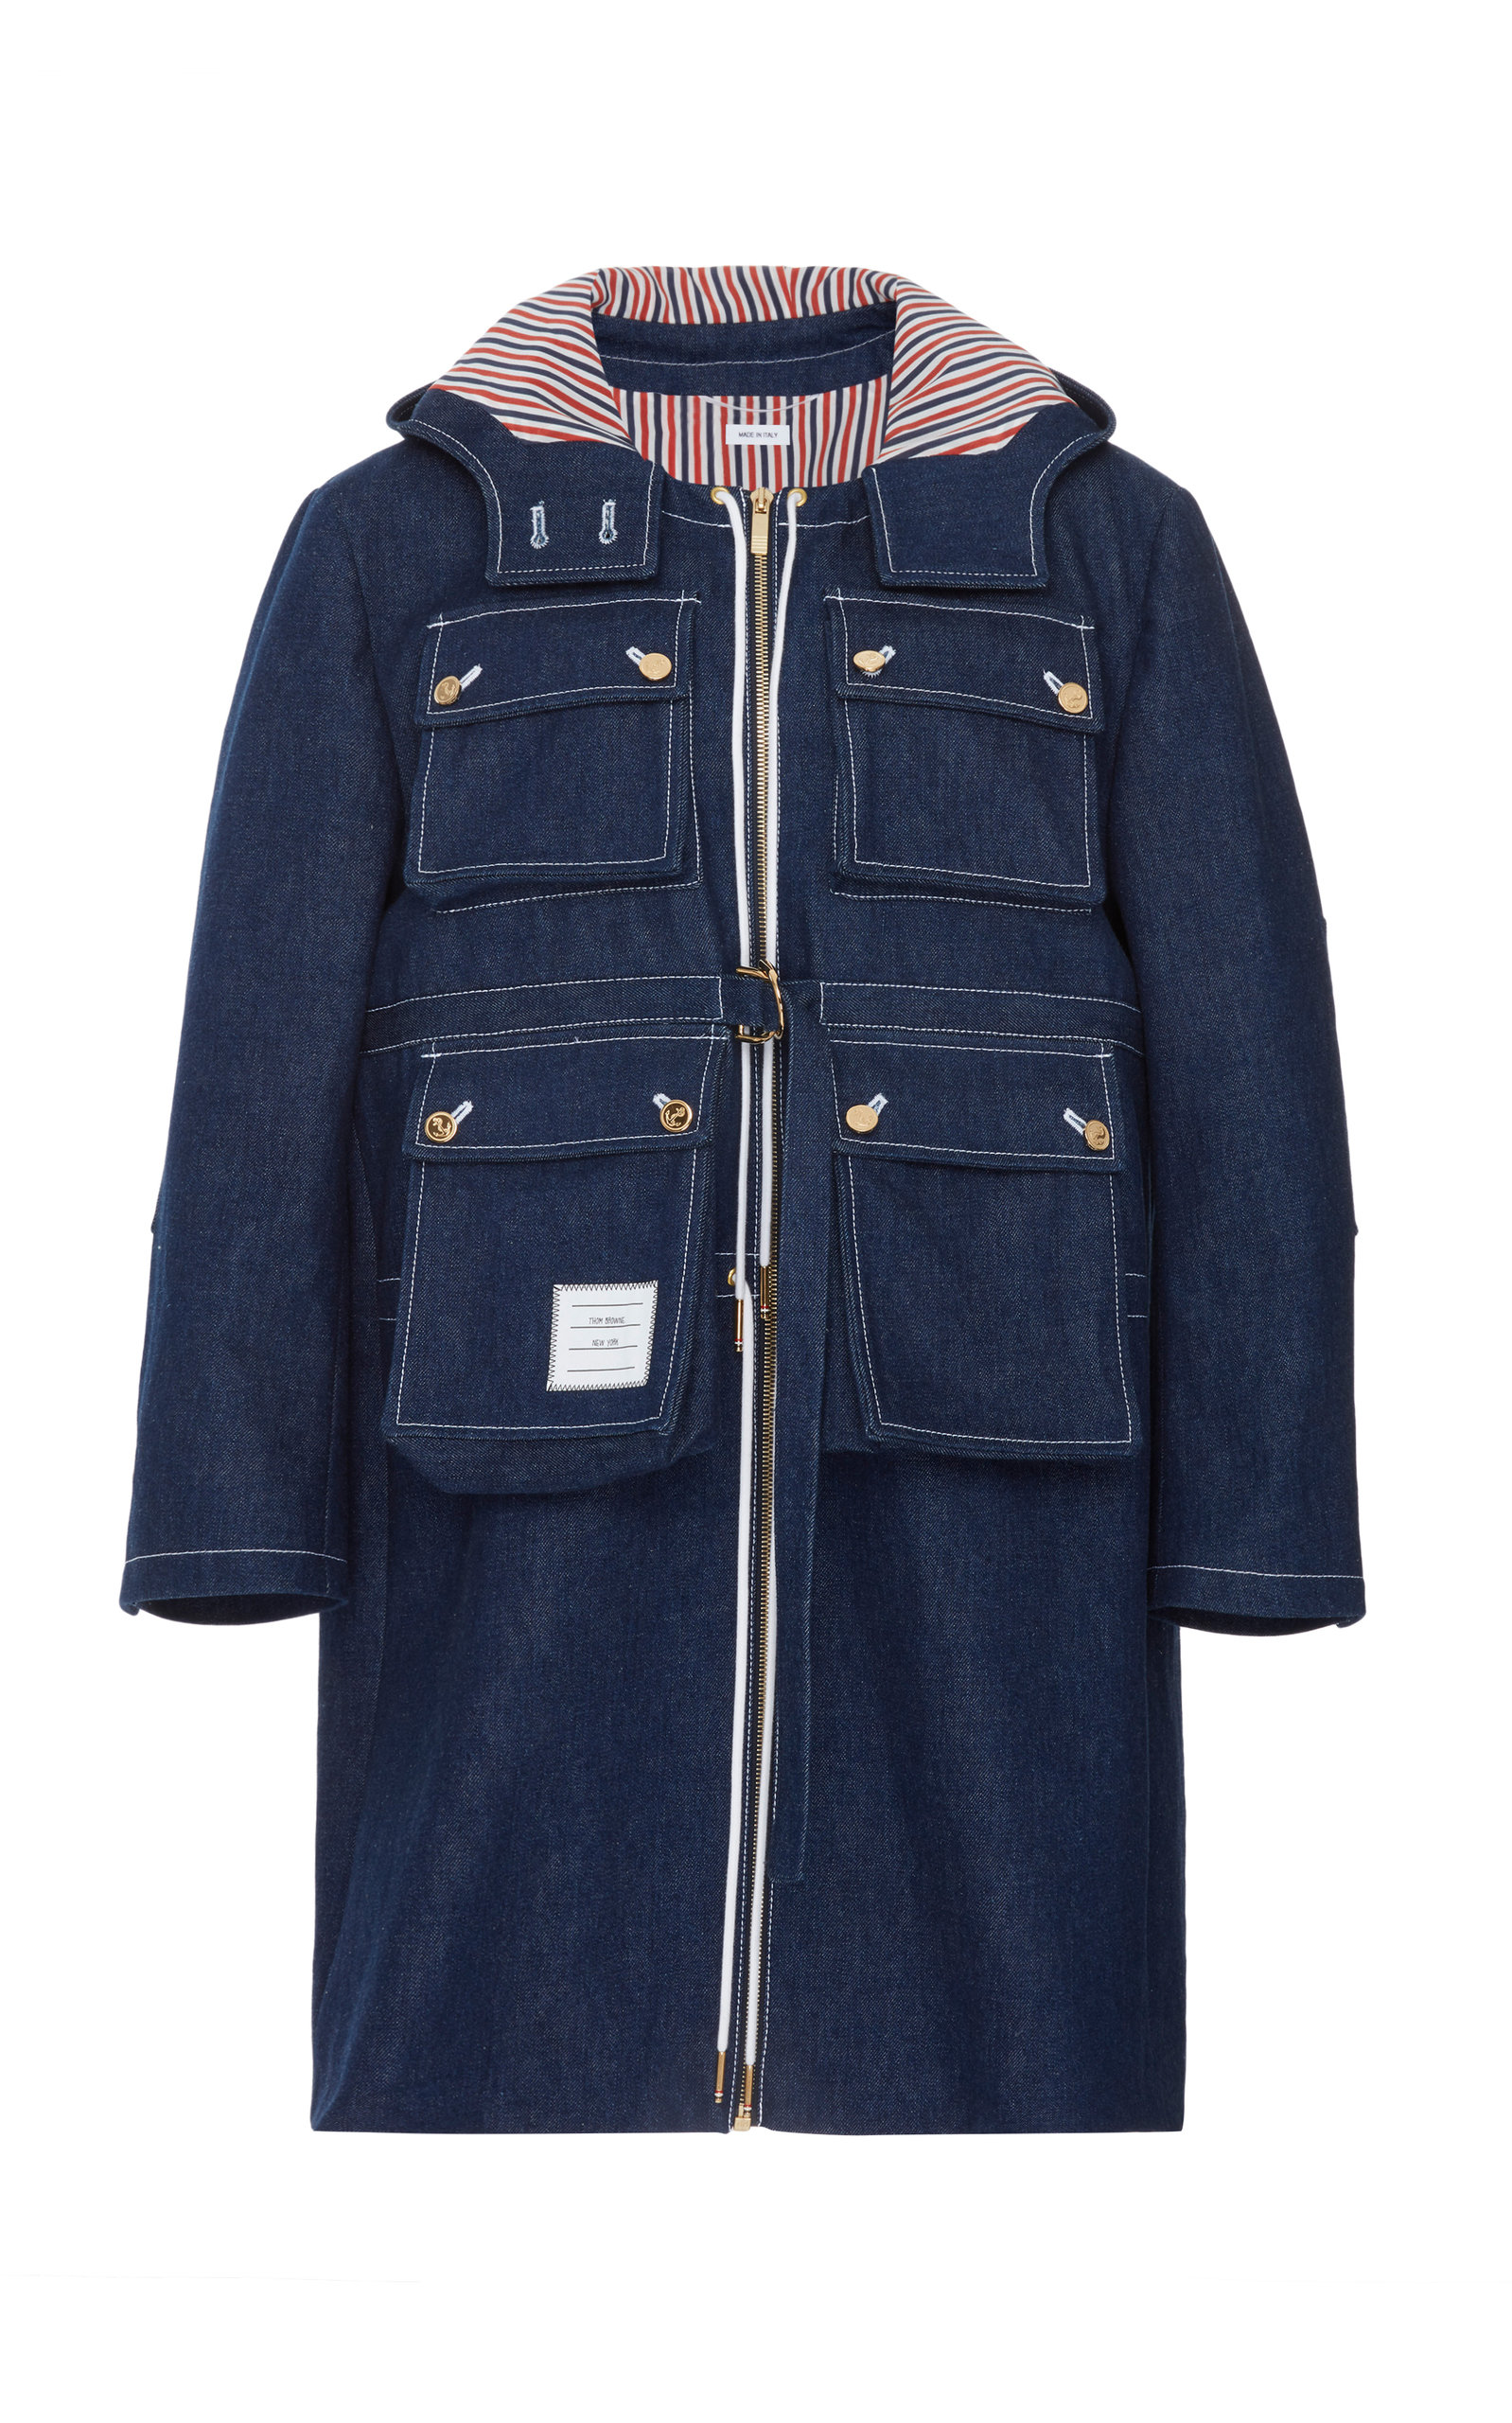 Thom Browne HOODED STRIPE-DETAILED DENIM OVERCOAT